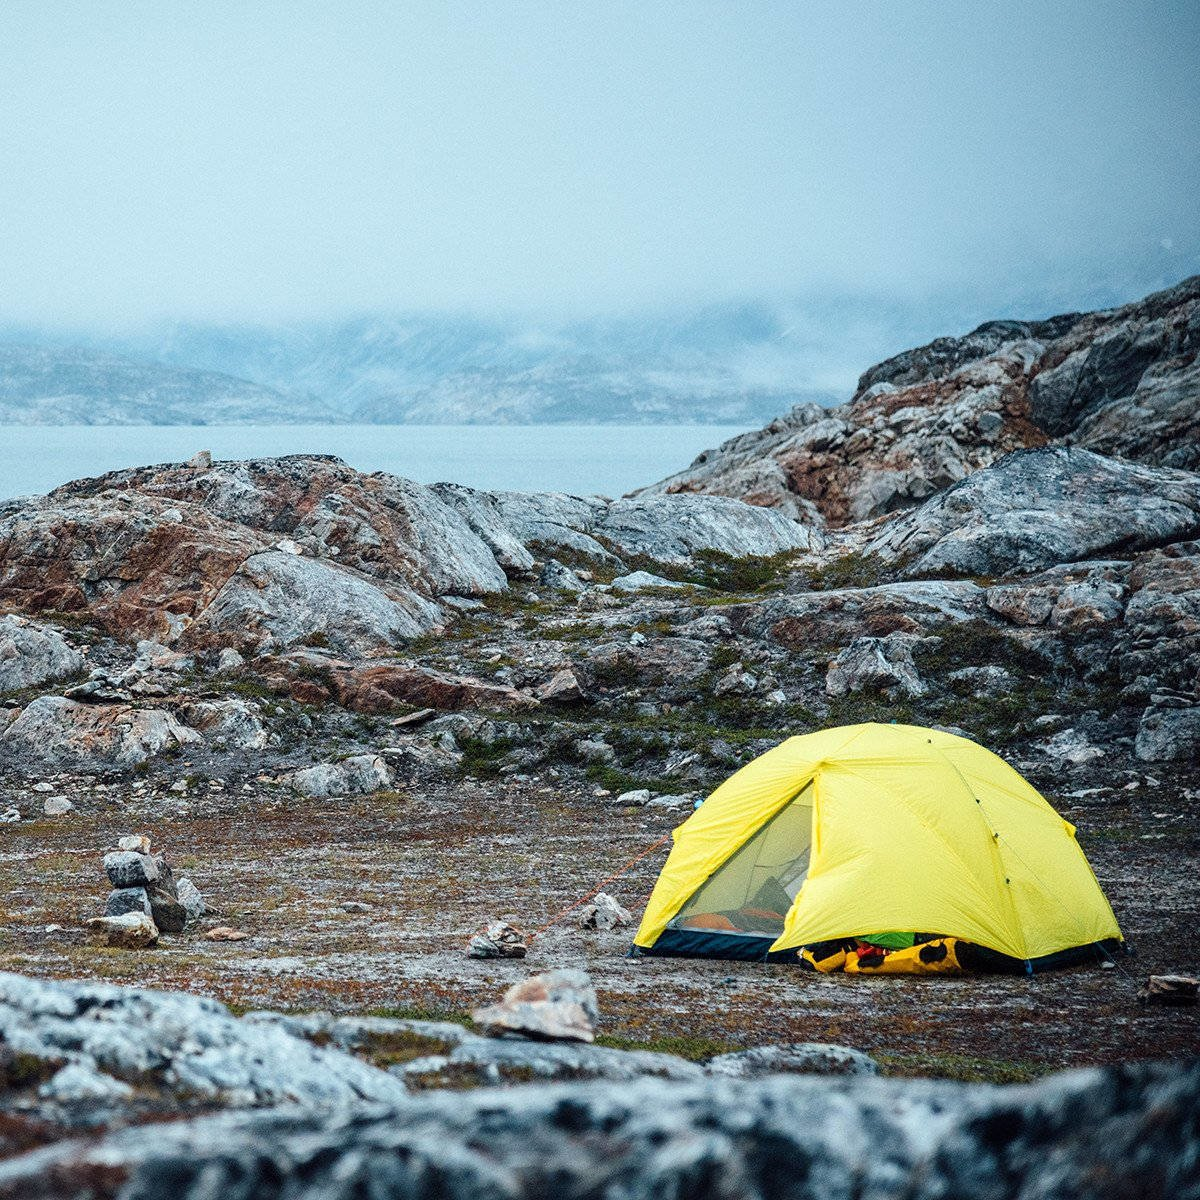 Photo 6 of 9 in Make the Most Out of Summer With These 9 Spectacular Tents